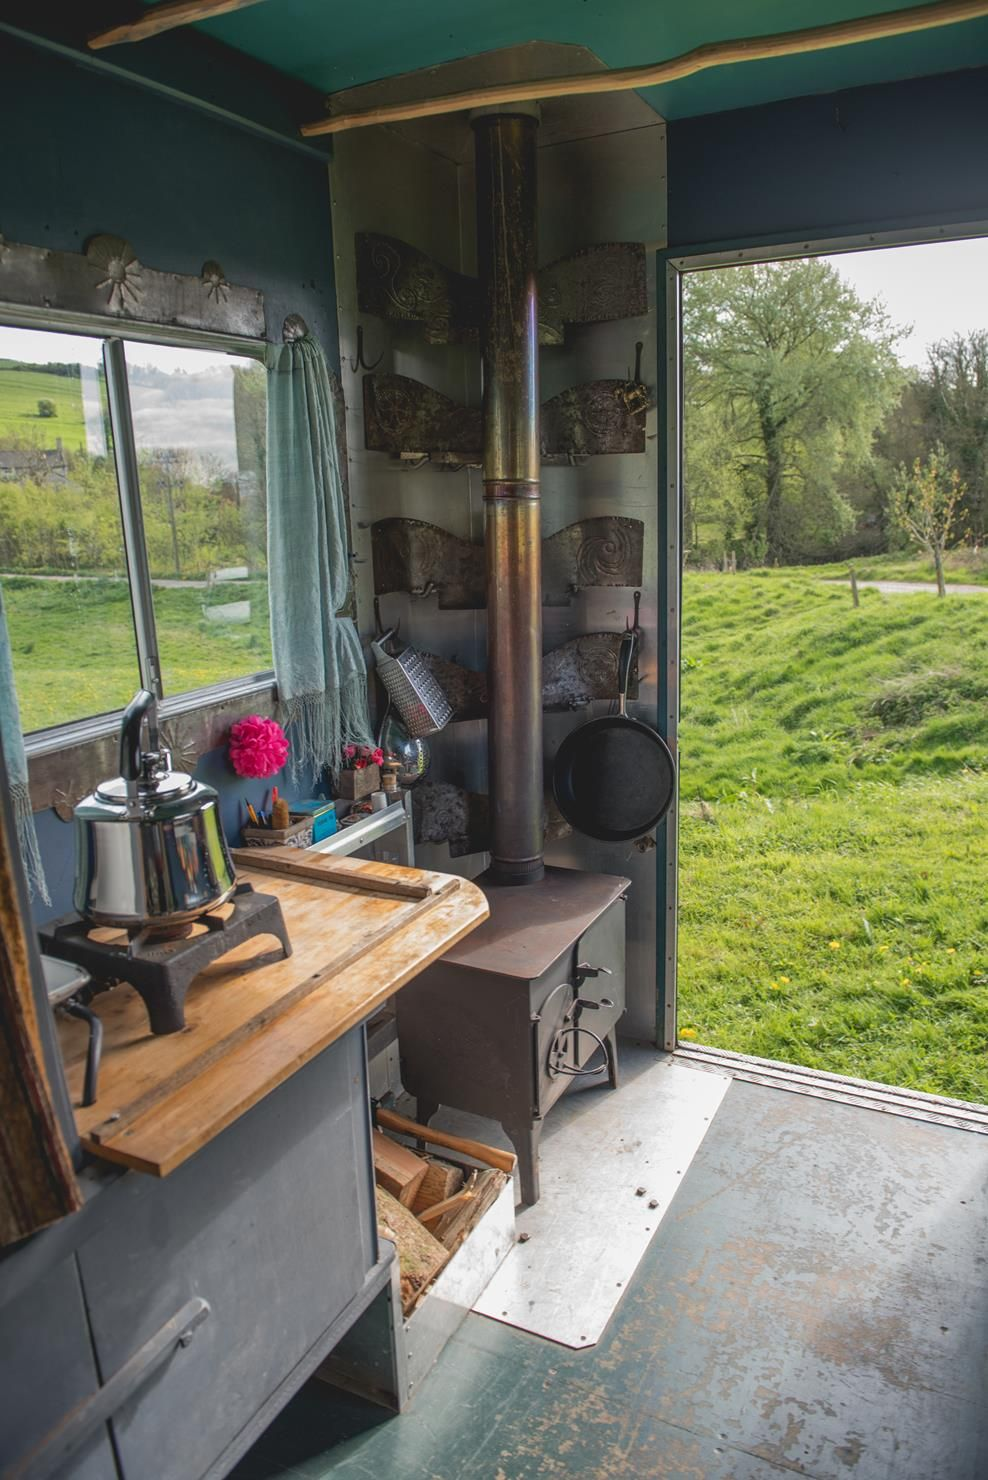 This campervan is so cosy and practical. The burner/oven is great for relaxing in front of or cooking your dinner in!  www.quirkycampers.co.uk